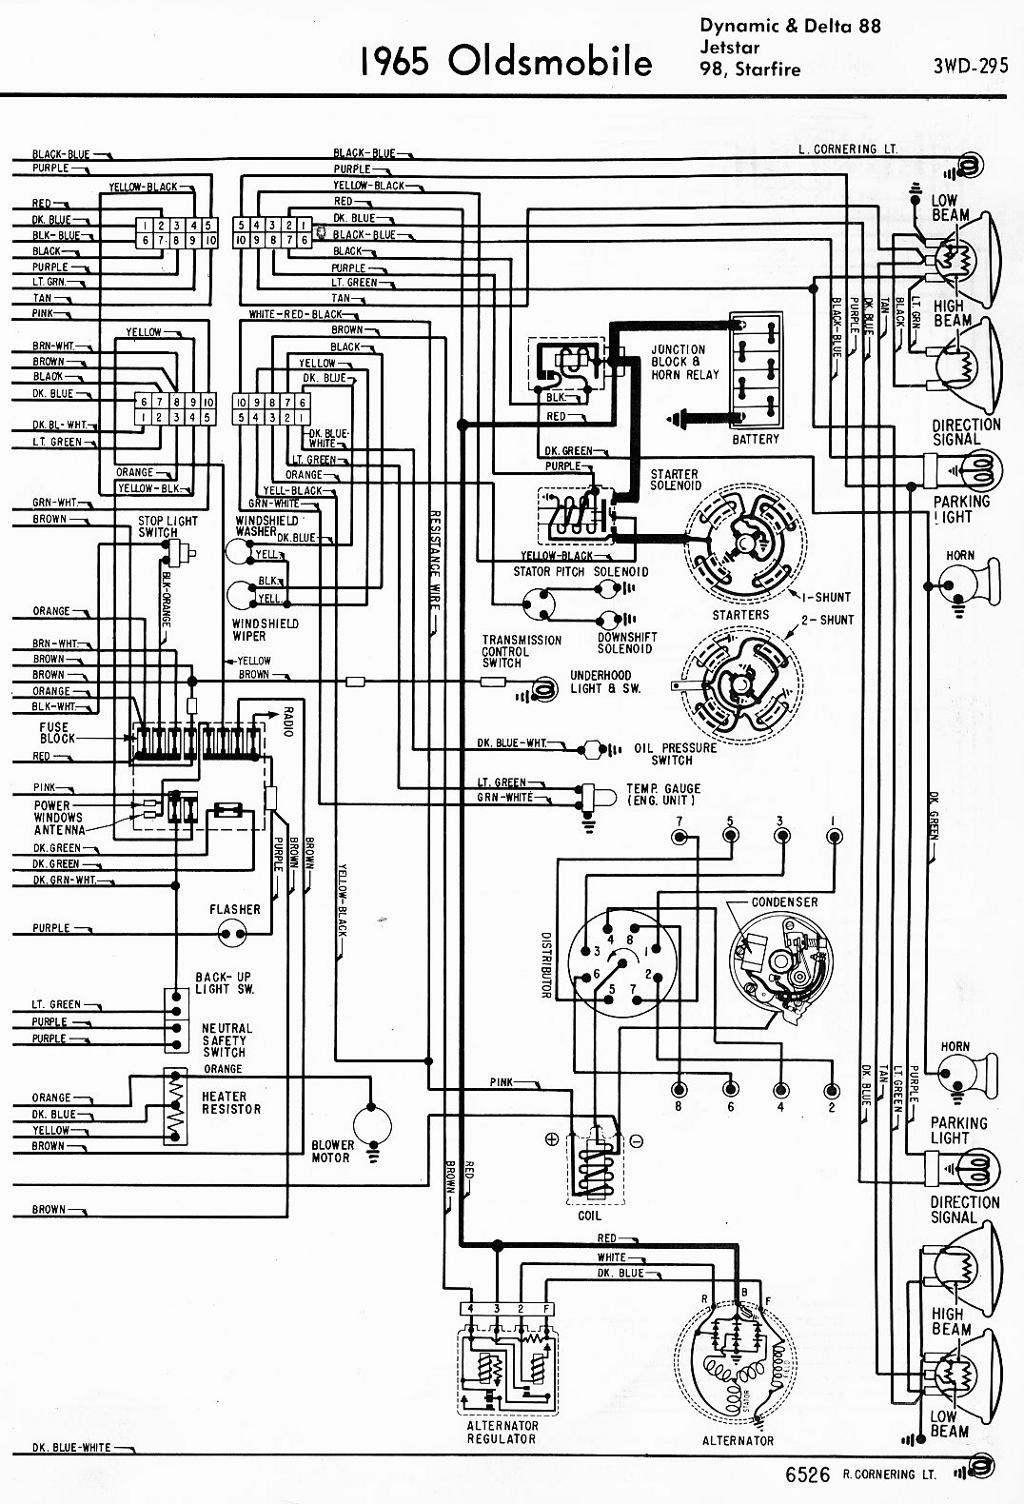 Alternator Wiring Diagram For 1986 Olds Diagrams Schema Single Wire Schematic Box Cable